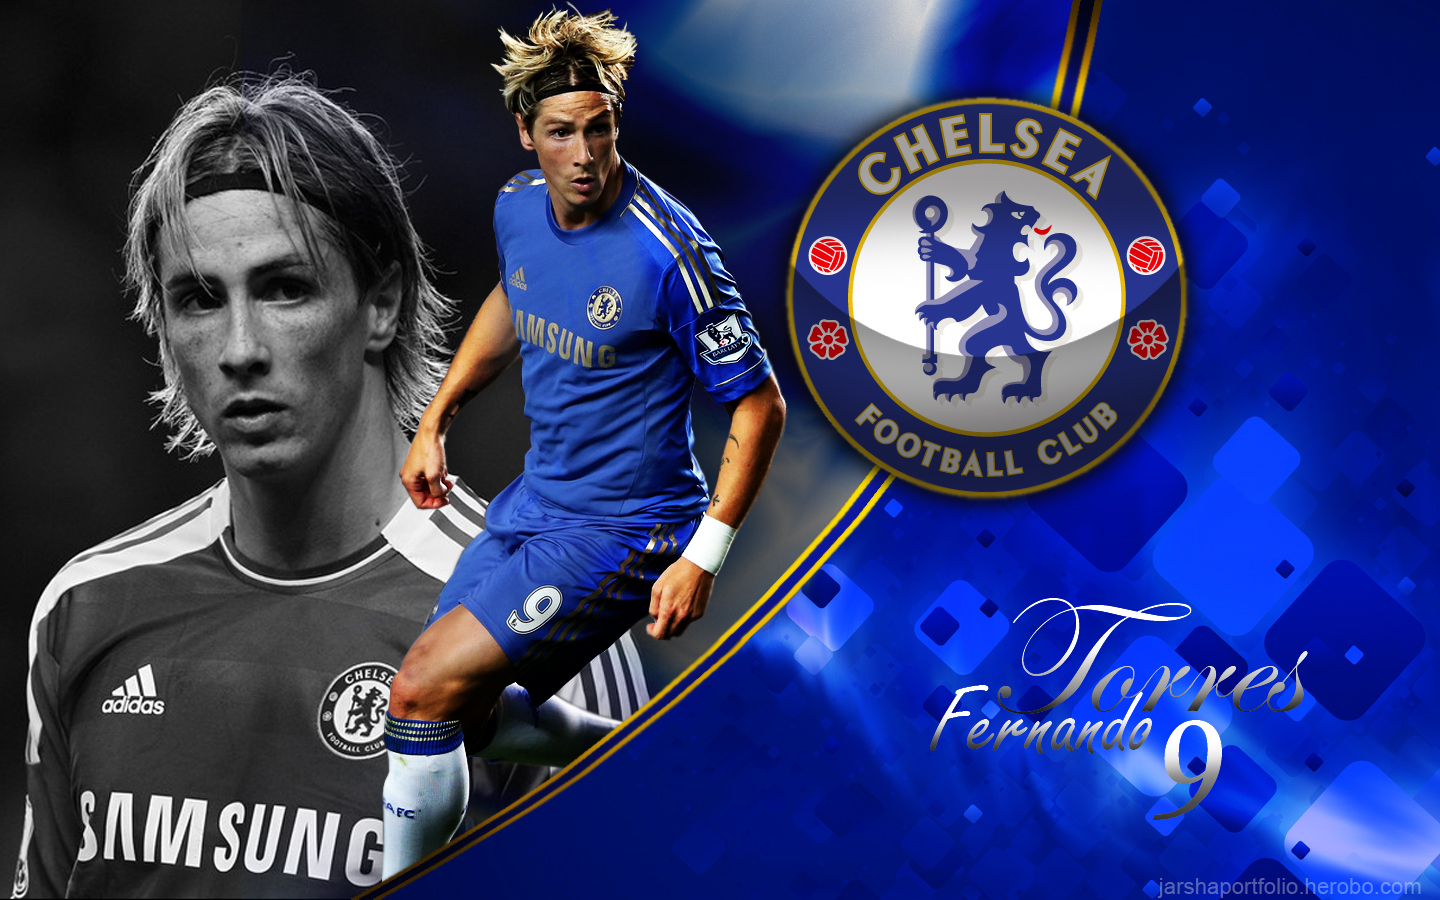 Fernando Torres 2013 Wallpapers HD 1440x900